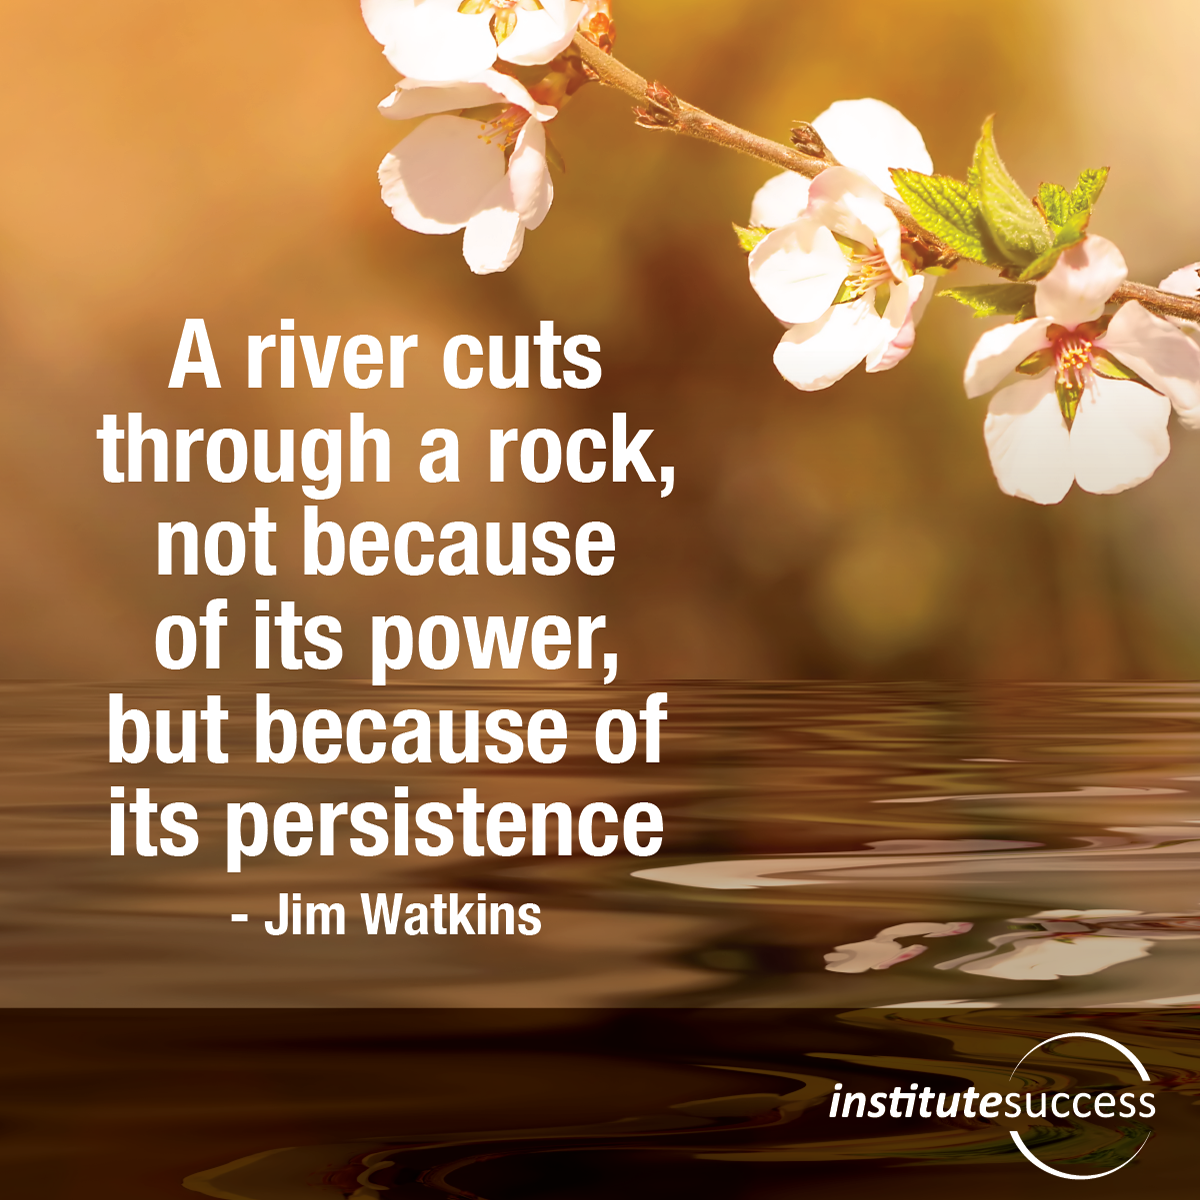 Persistence Motivational Quotes: A River Cuts Through A Rock, Not Because Of Its Power, But